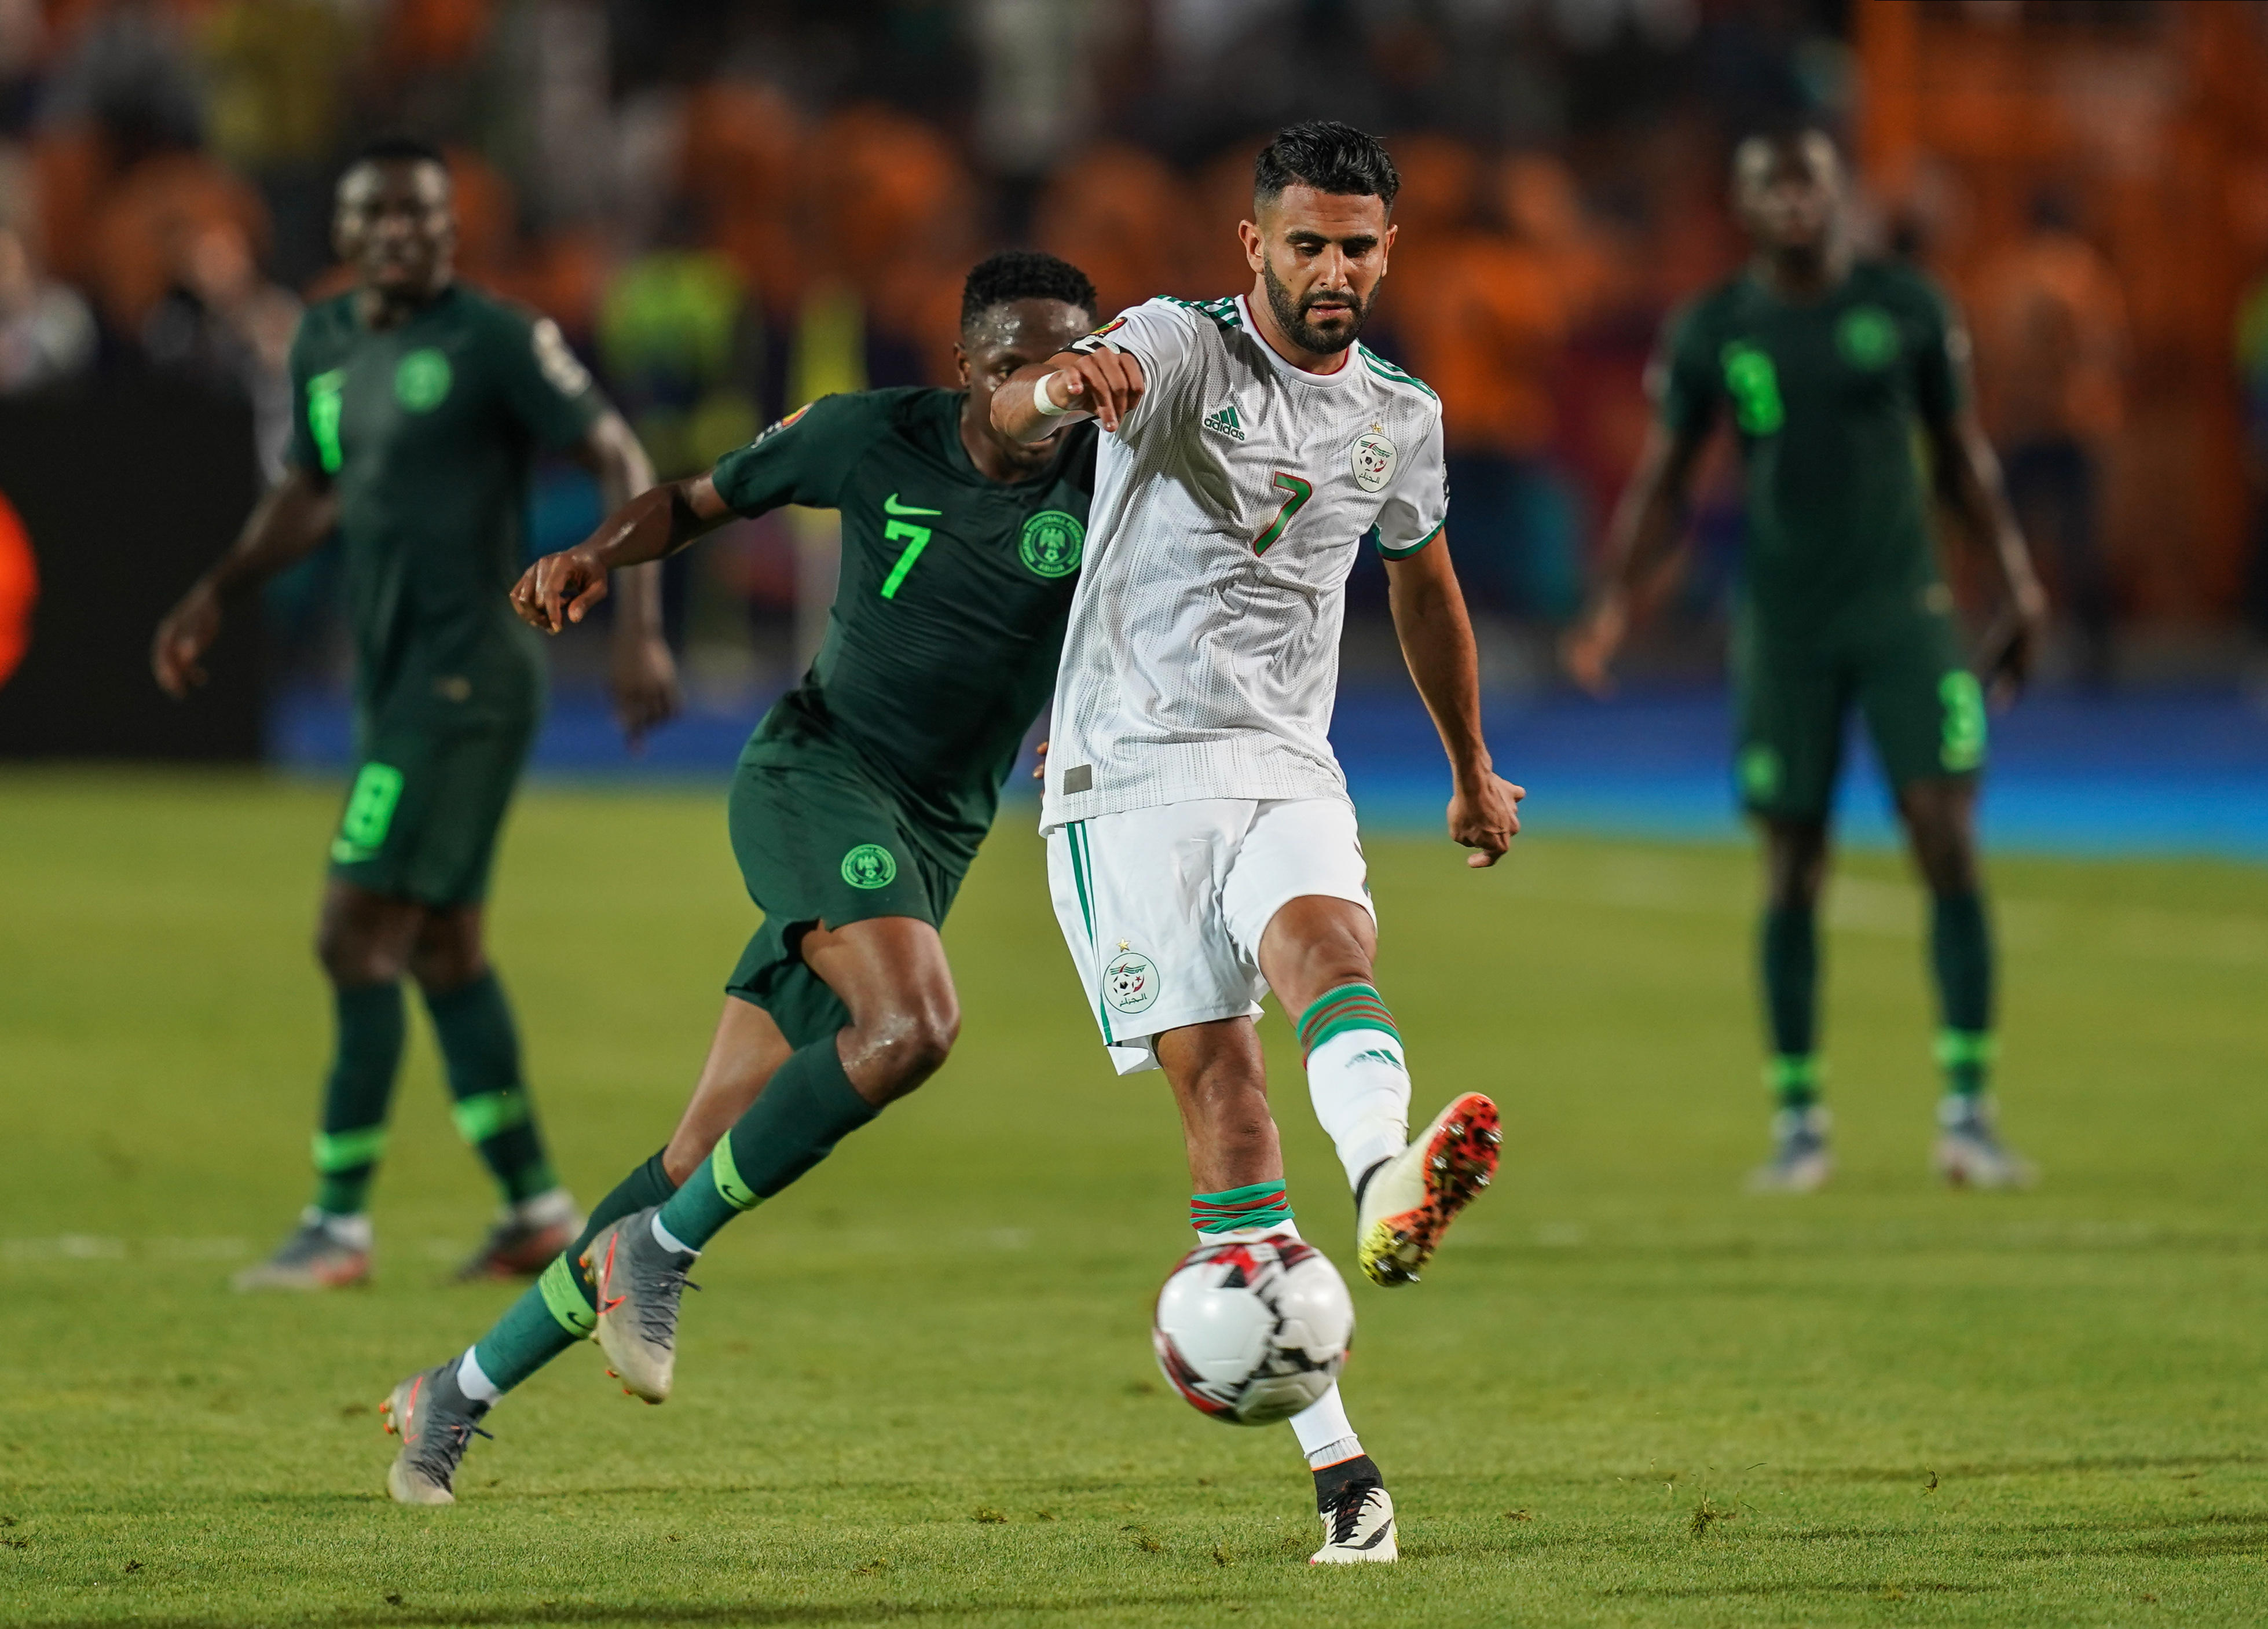 Manchester City at the Africa Cup of Nations: Part 6